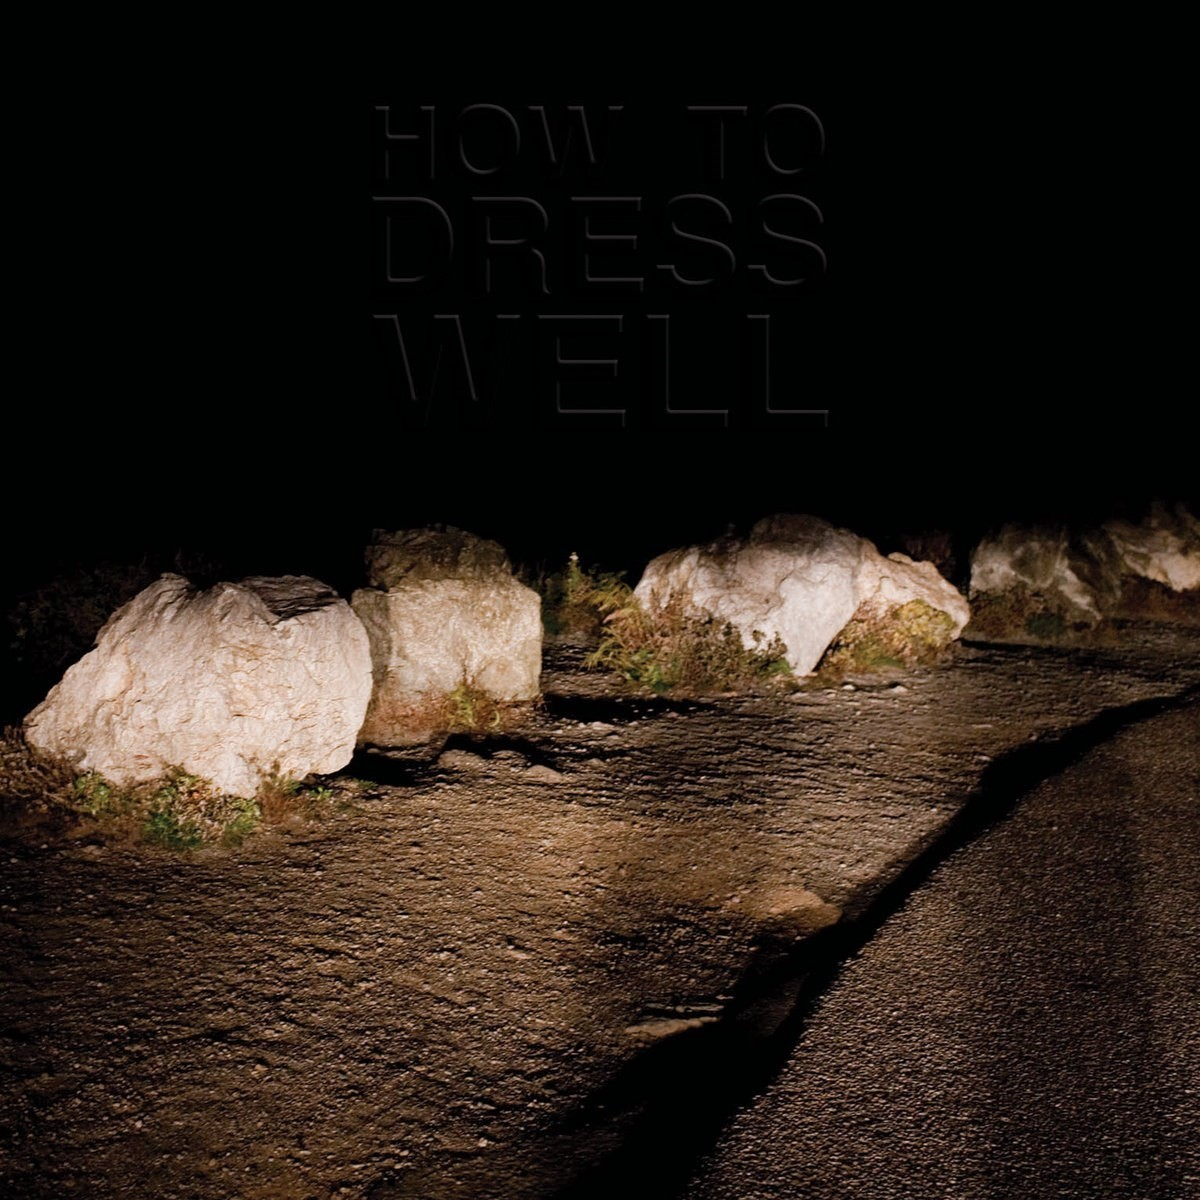 How To Dress Well – Love Remains (2010)